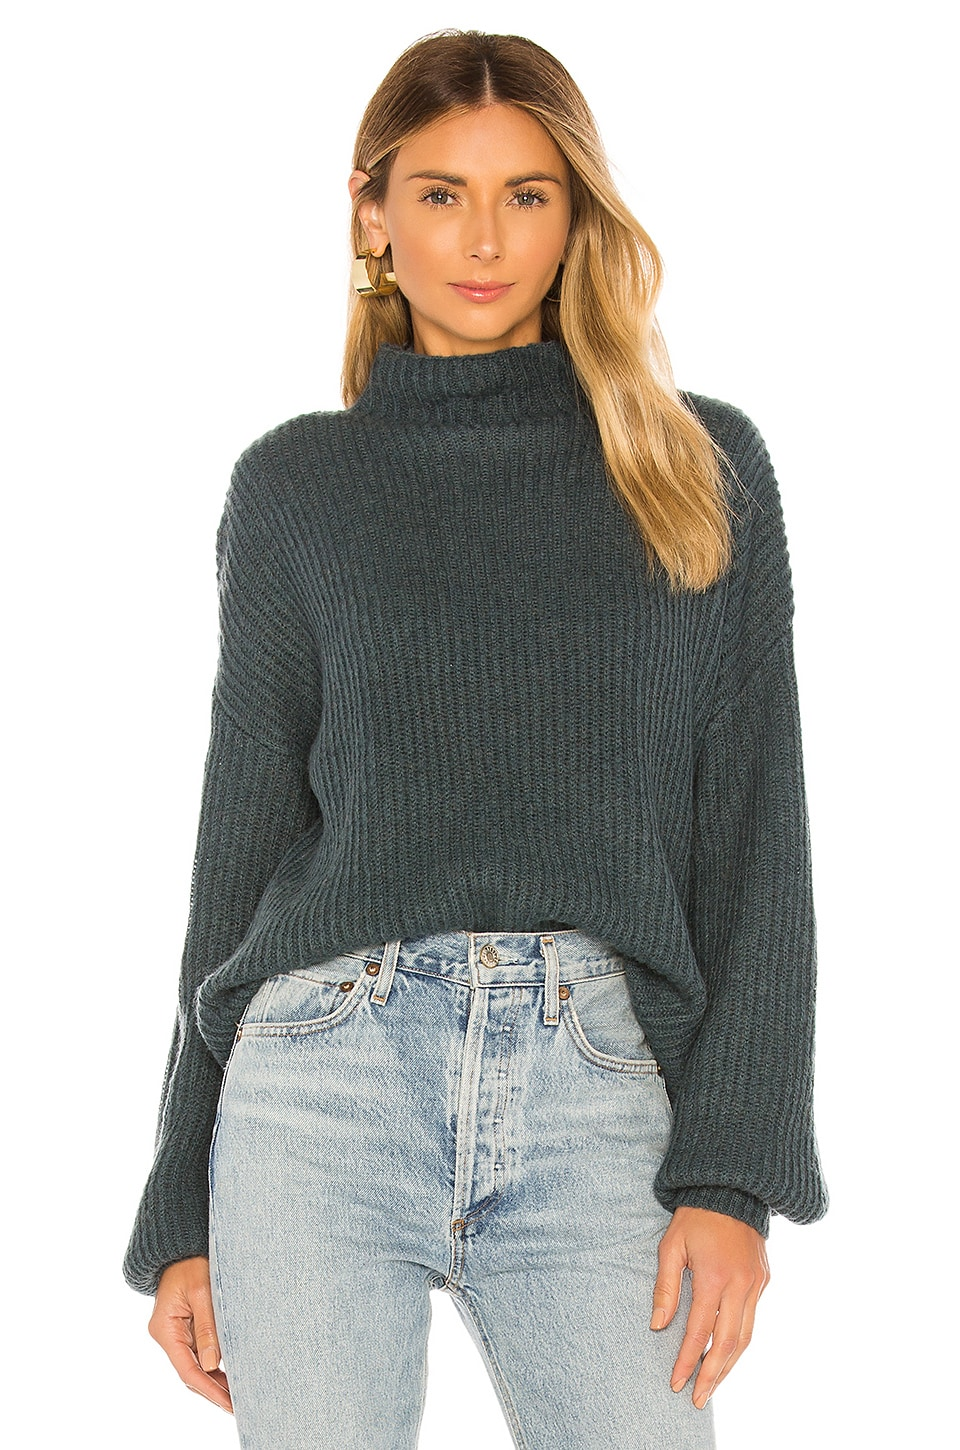 Lovers + Friends Maddock Turtleneck in Dark Green